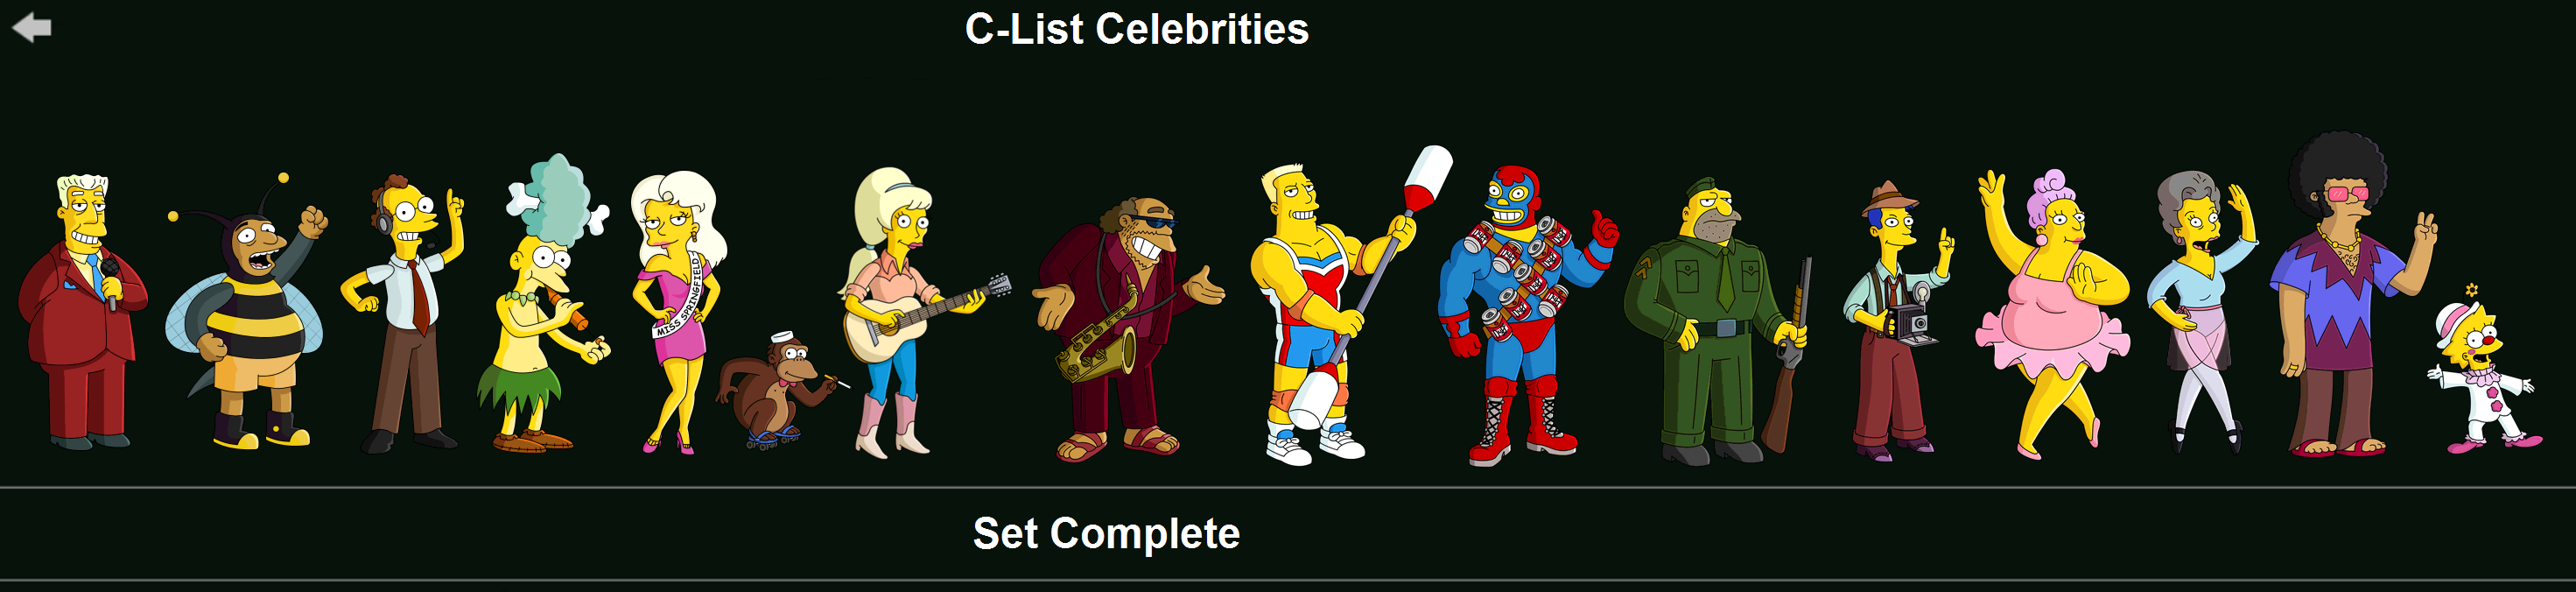 C-list celebrities.png